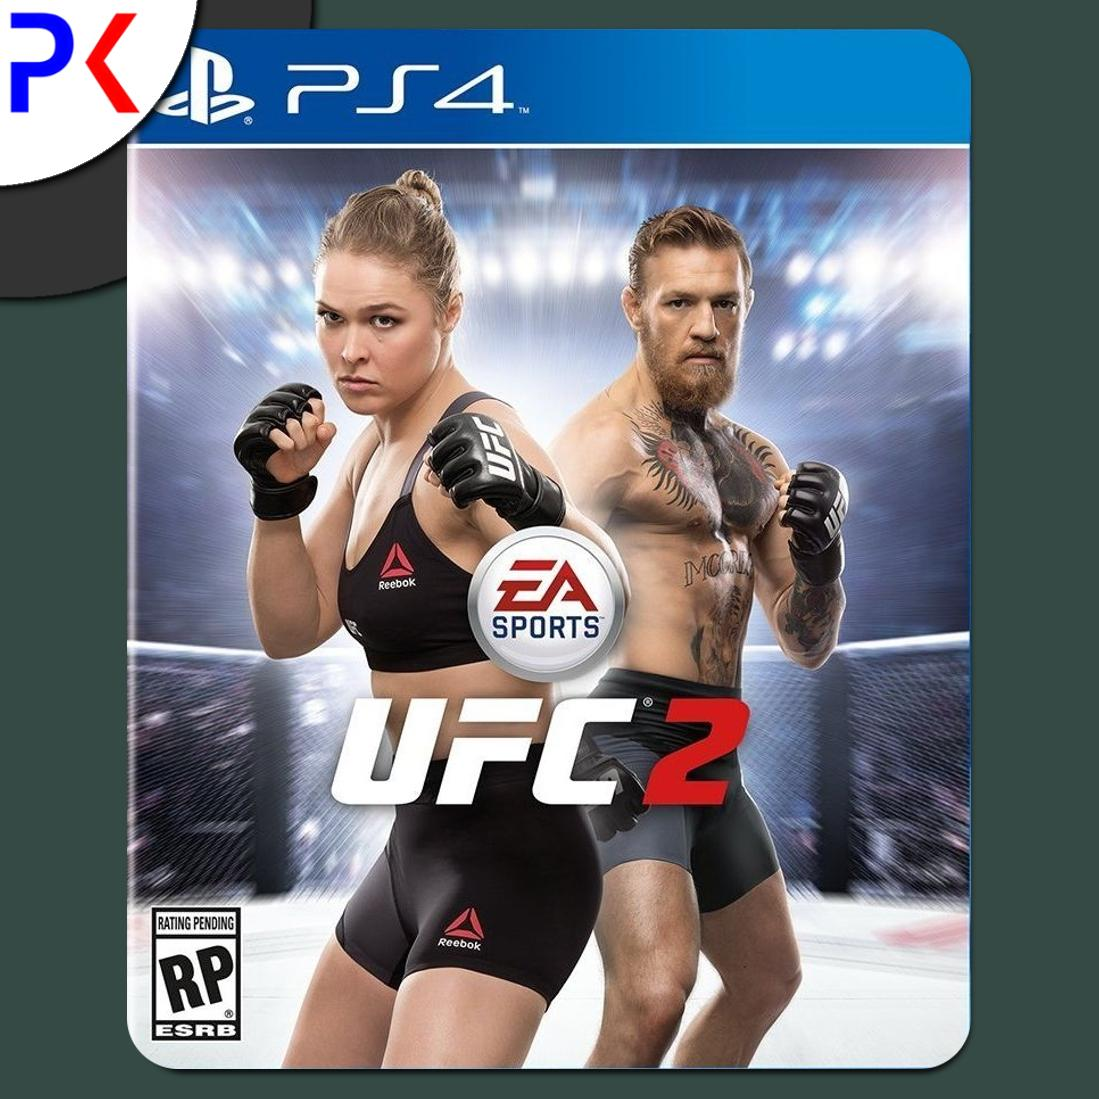 Sale Ps4 Ea Sports Ufc 2 R3 Electronic Arts Branded